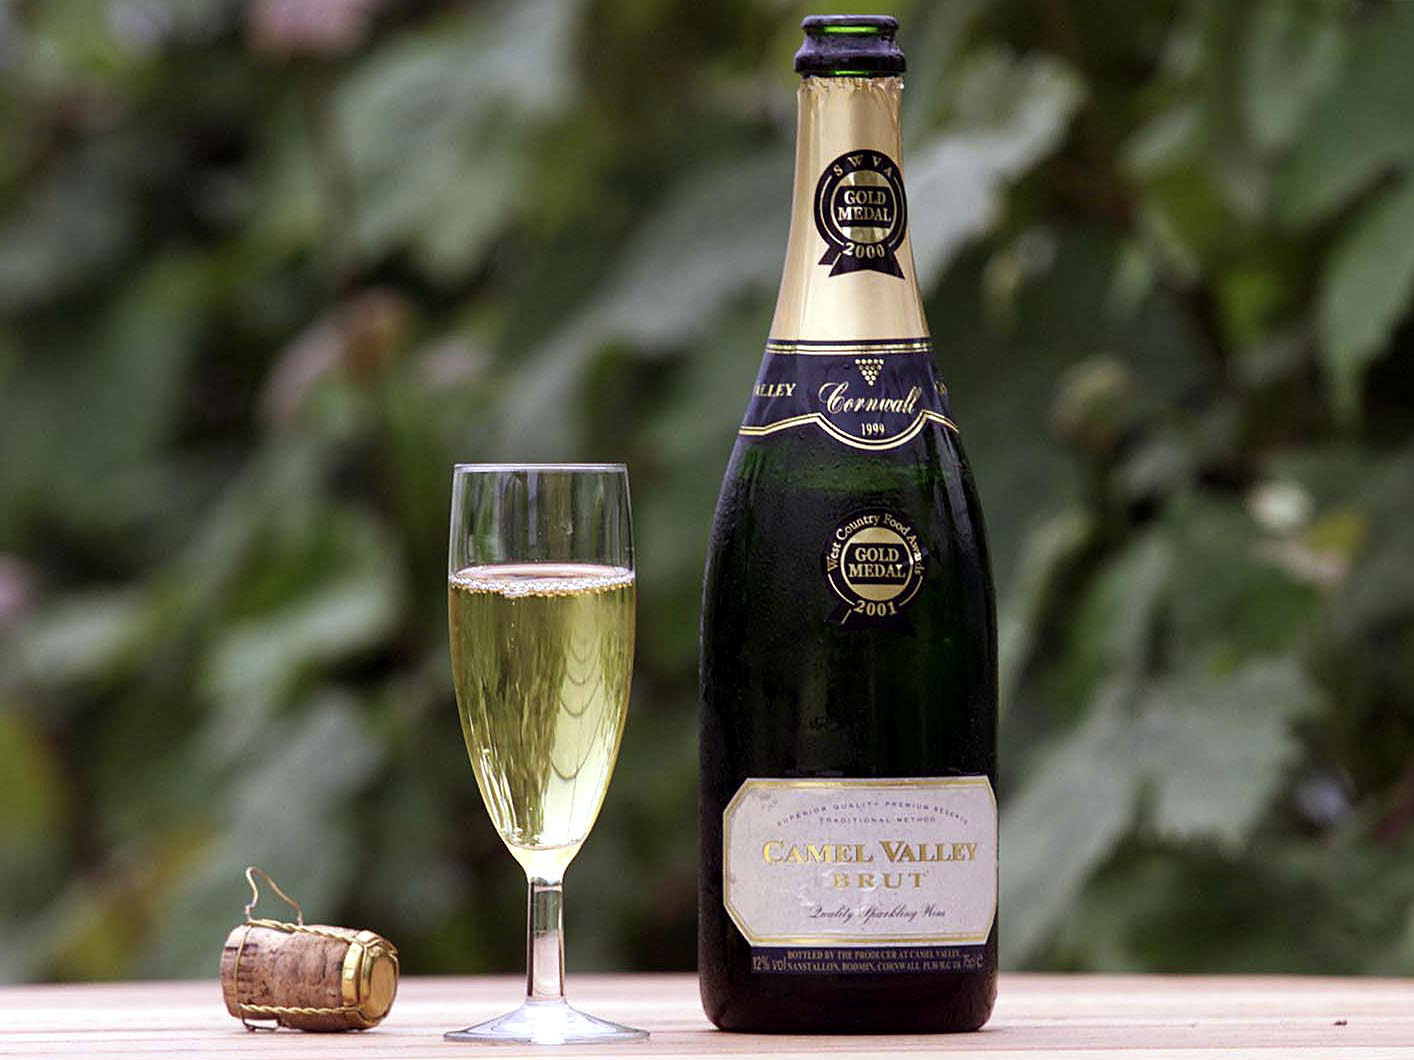 Camel Valley Brut